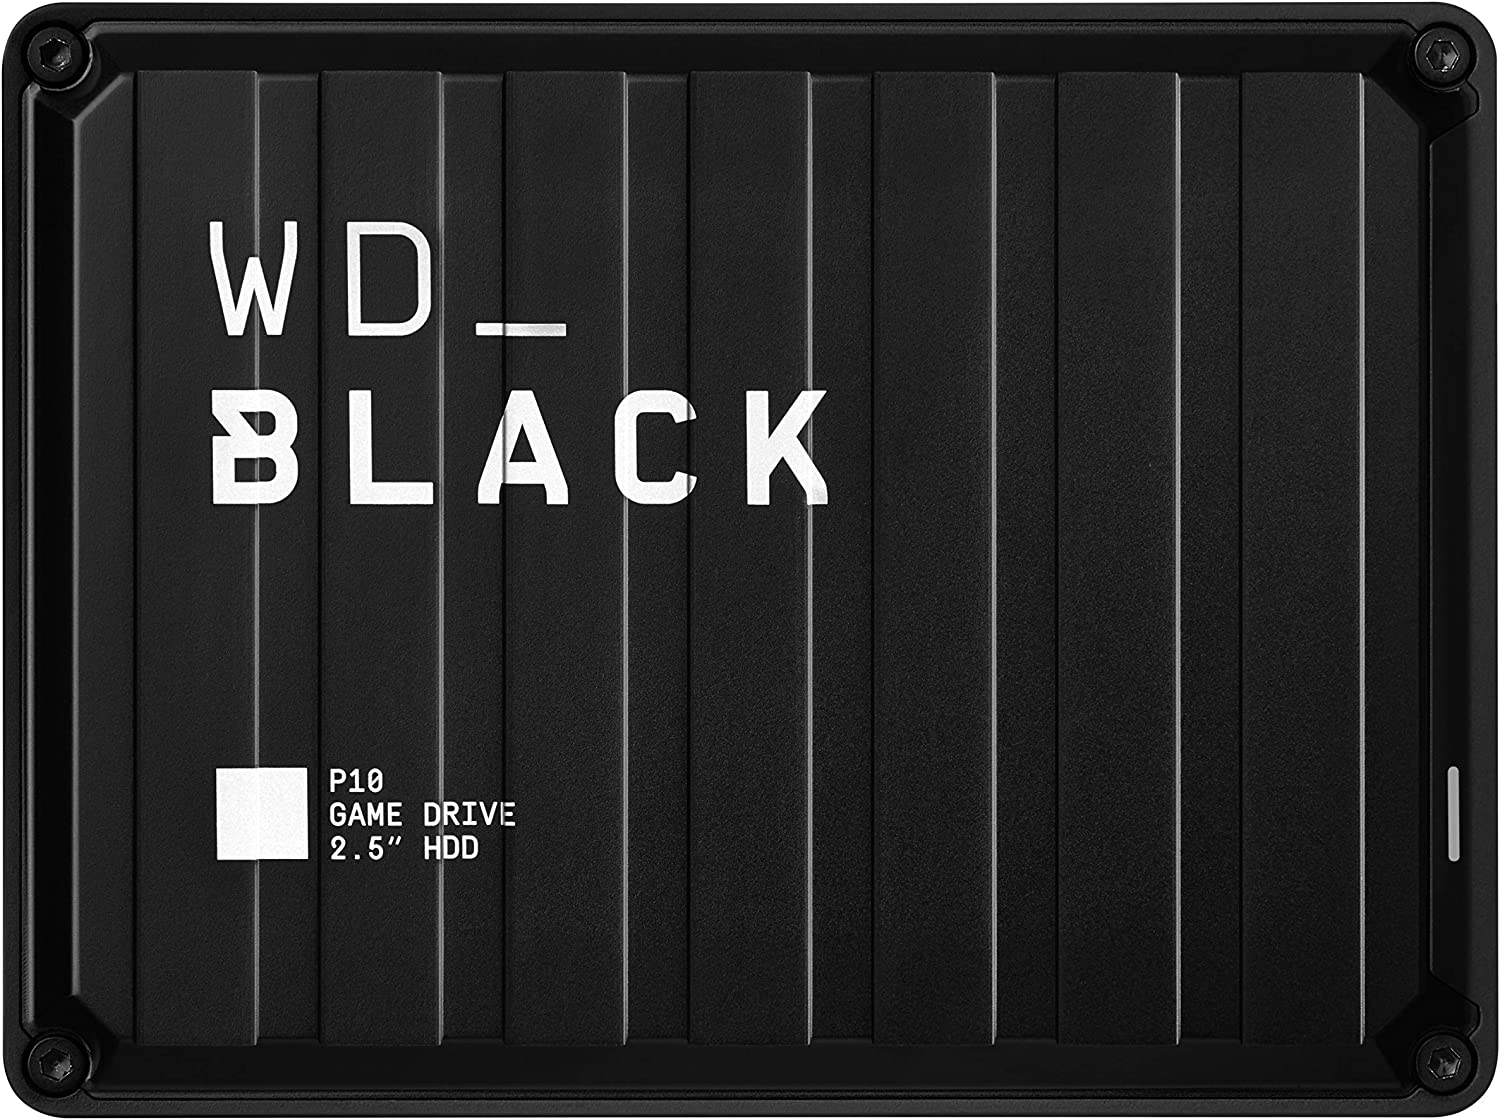 WD Black 5TB P10 Game Drive Portable External Hard Drive Compatible with PS4 Xbox One PC and Mac WDBA3A0050BBKWESN